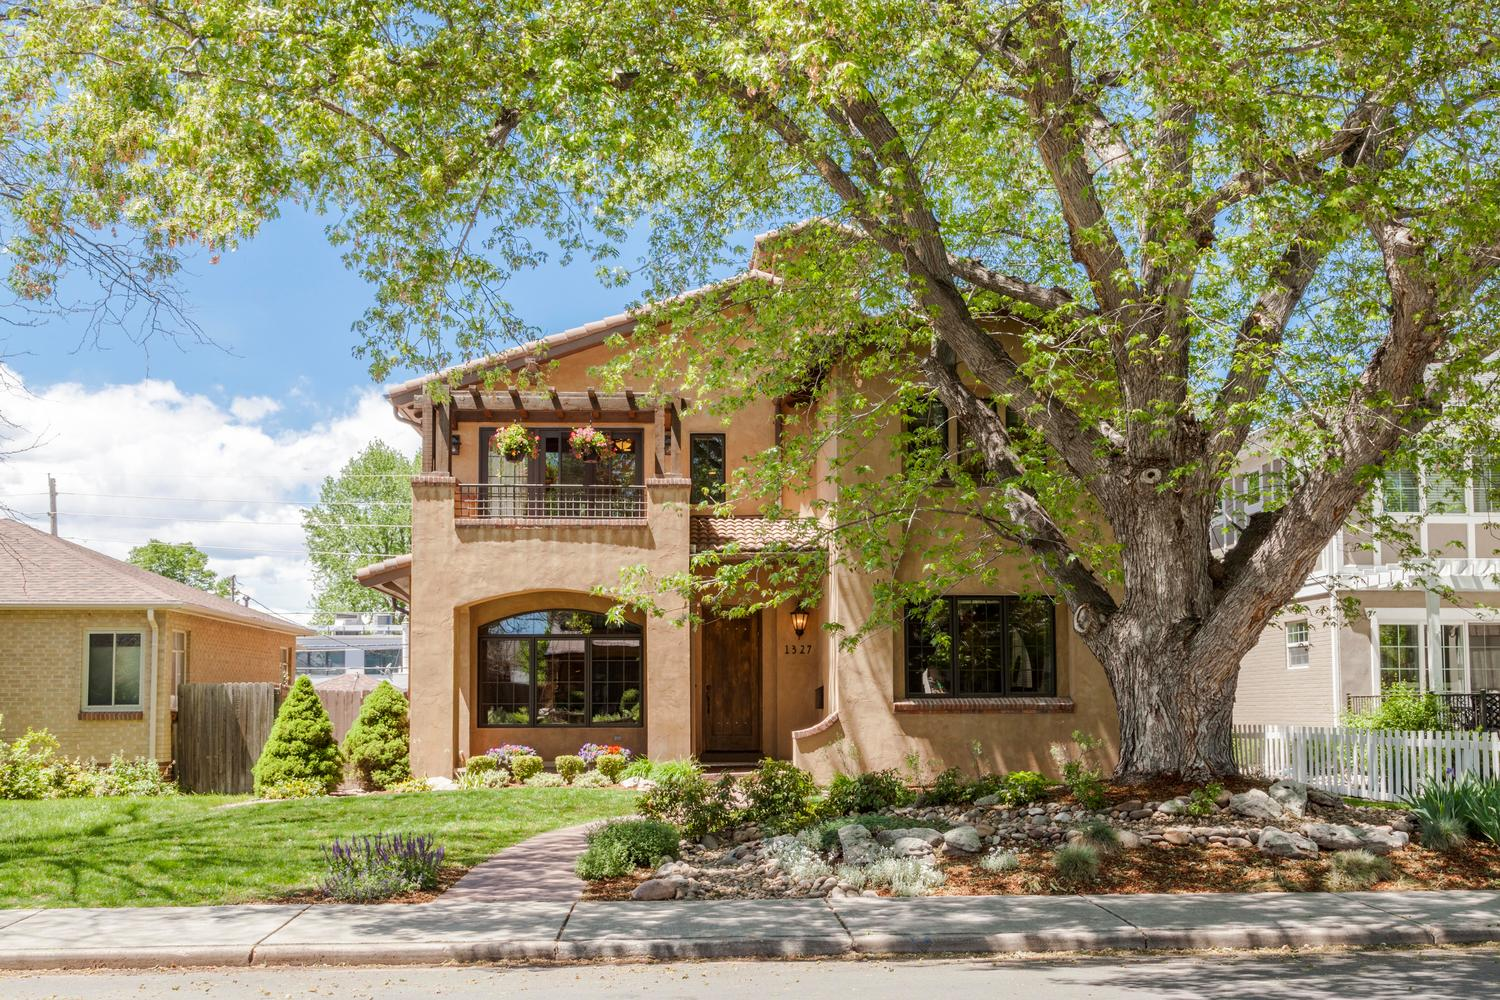 Single Family Home for Sale at Exquisitely Crafted Home 1327 South Saint Paul Street Cory-Merrill, Denver, Colorado, 80210 United States